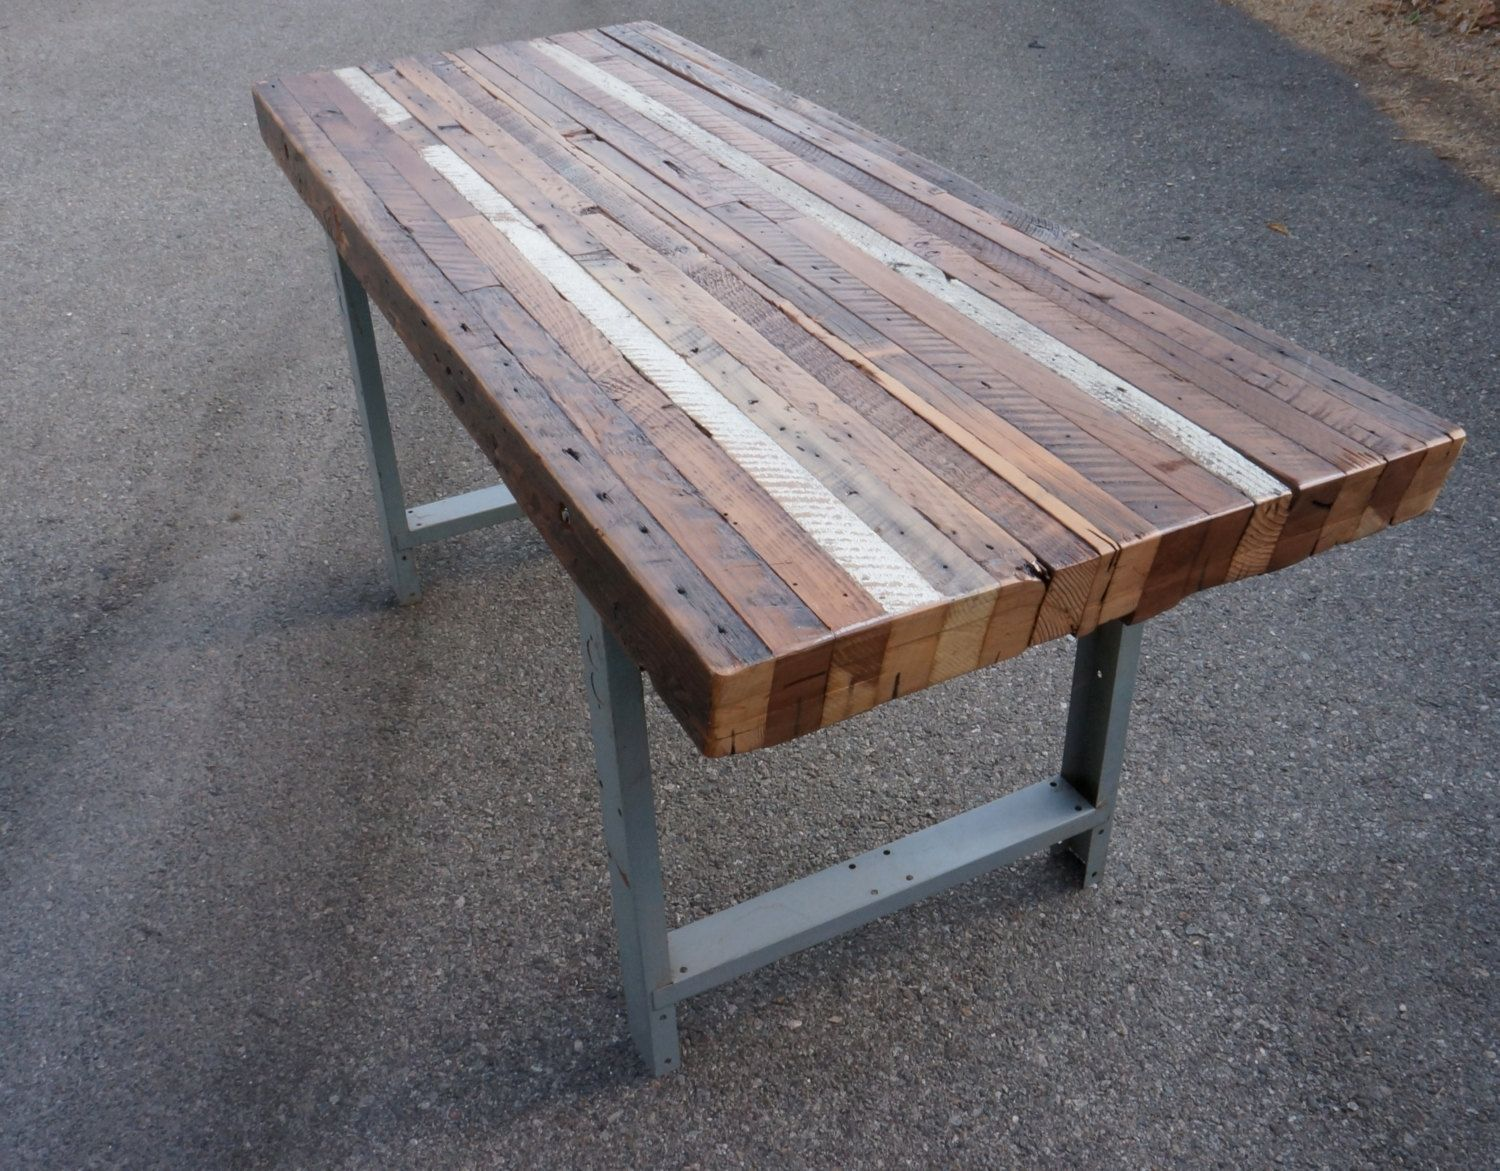 Outdoor Indoor Rustic Industrial Reclaimed Wood Dining Table Coffee